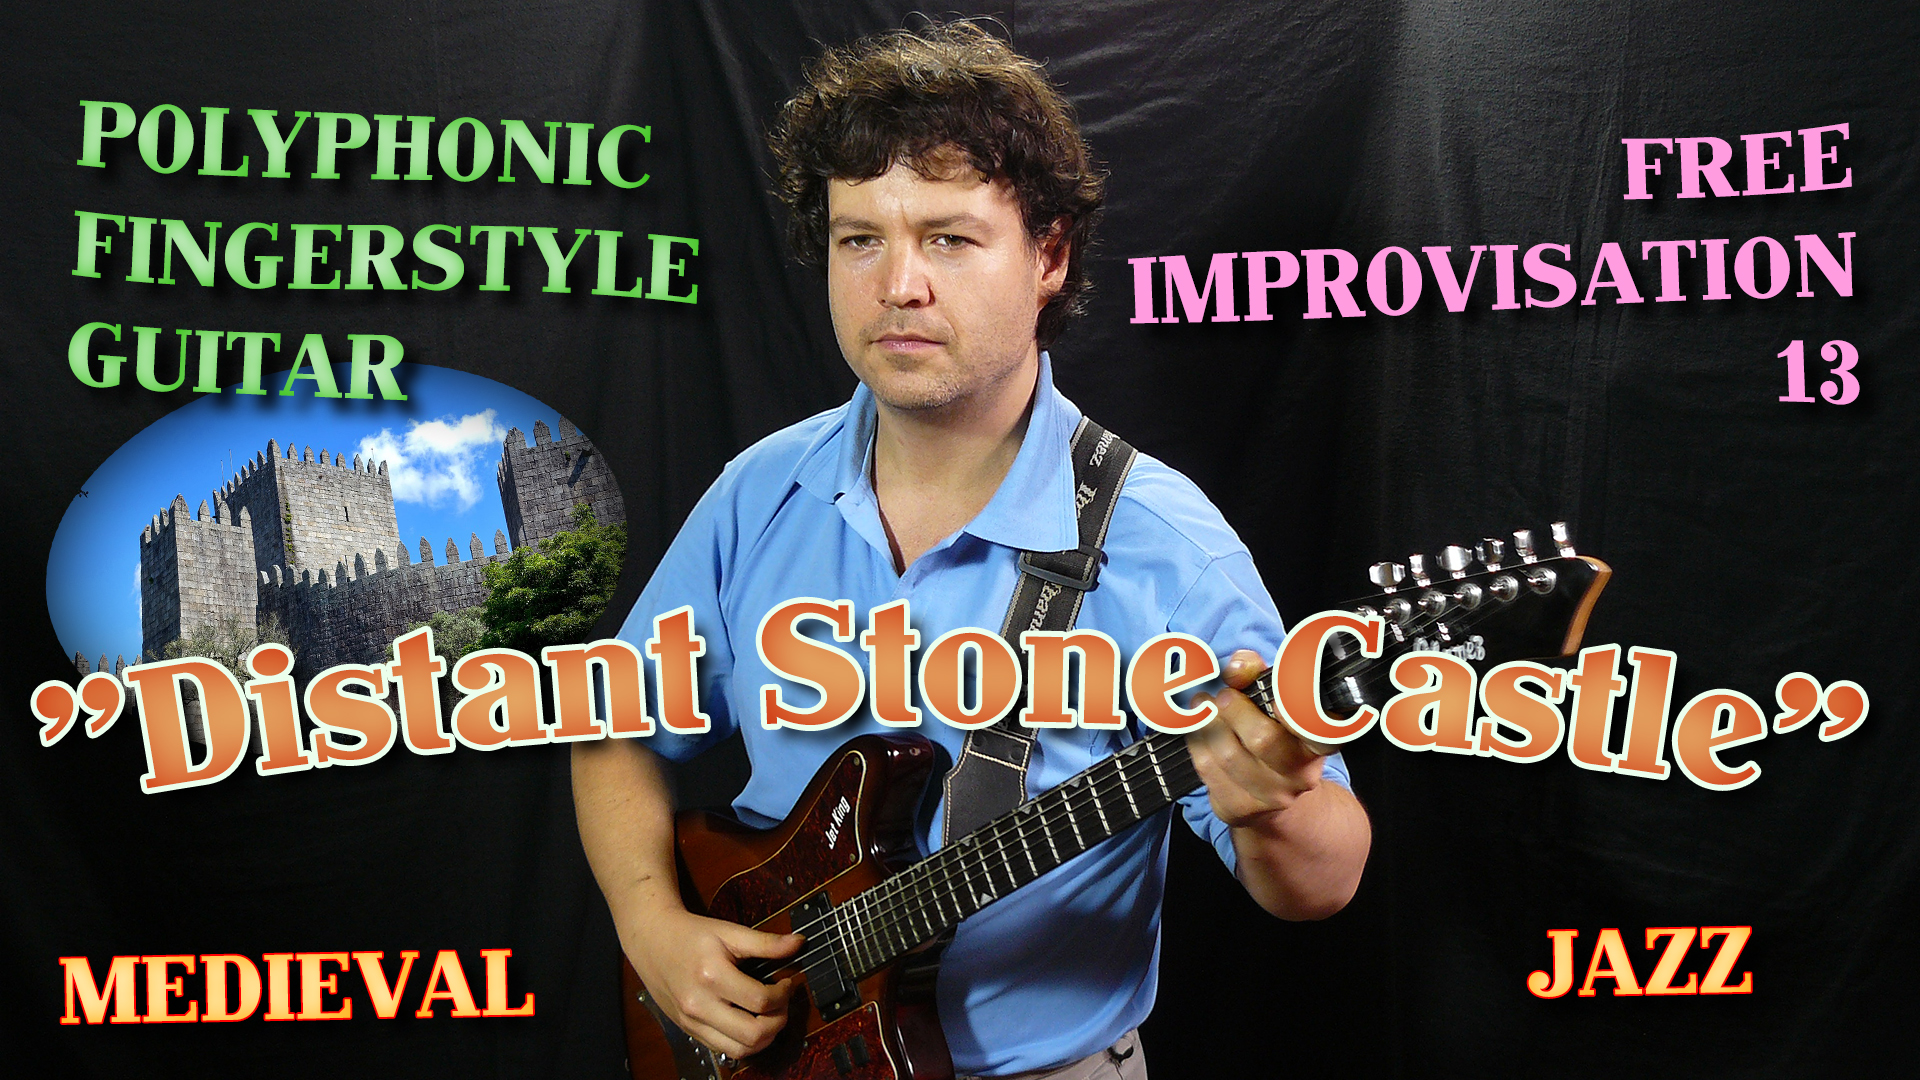 medieval guitar - distant stone castle - contrapuntal fingerstyle free jazz